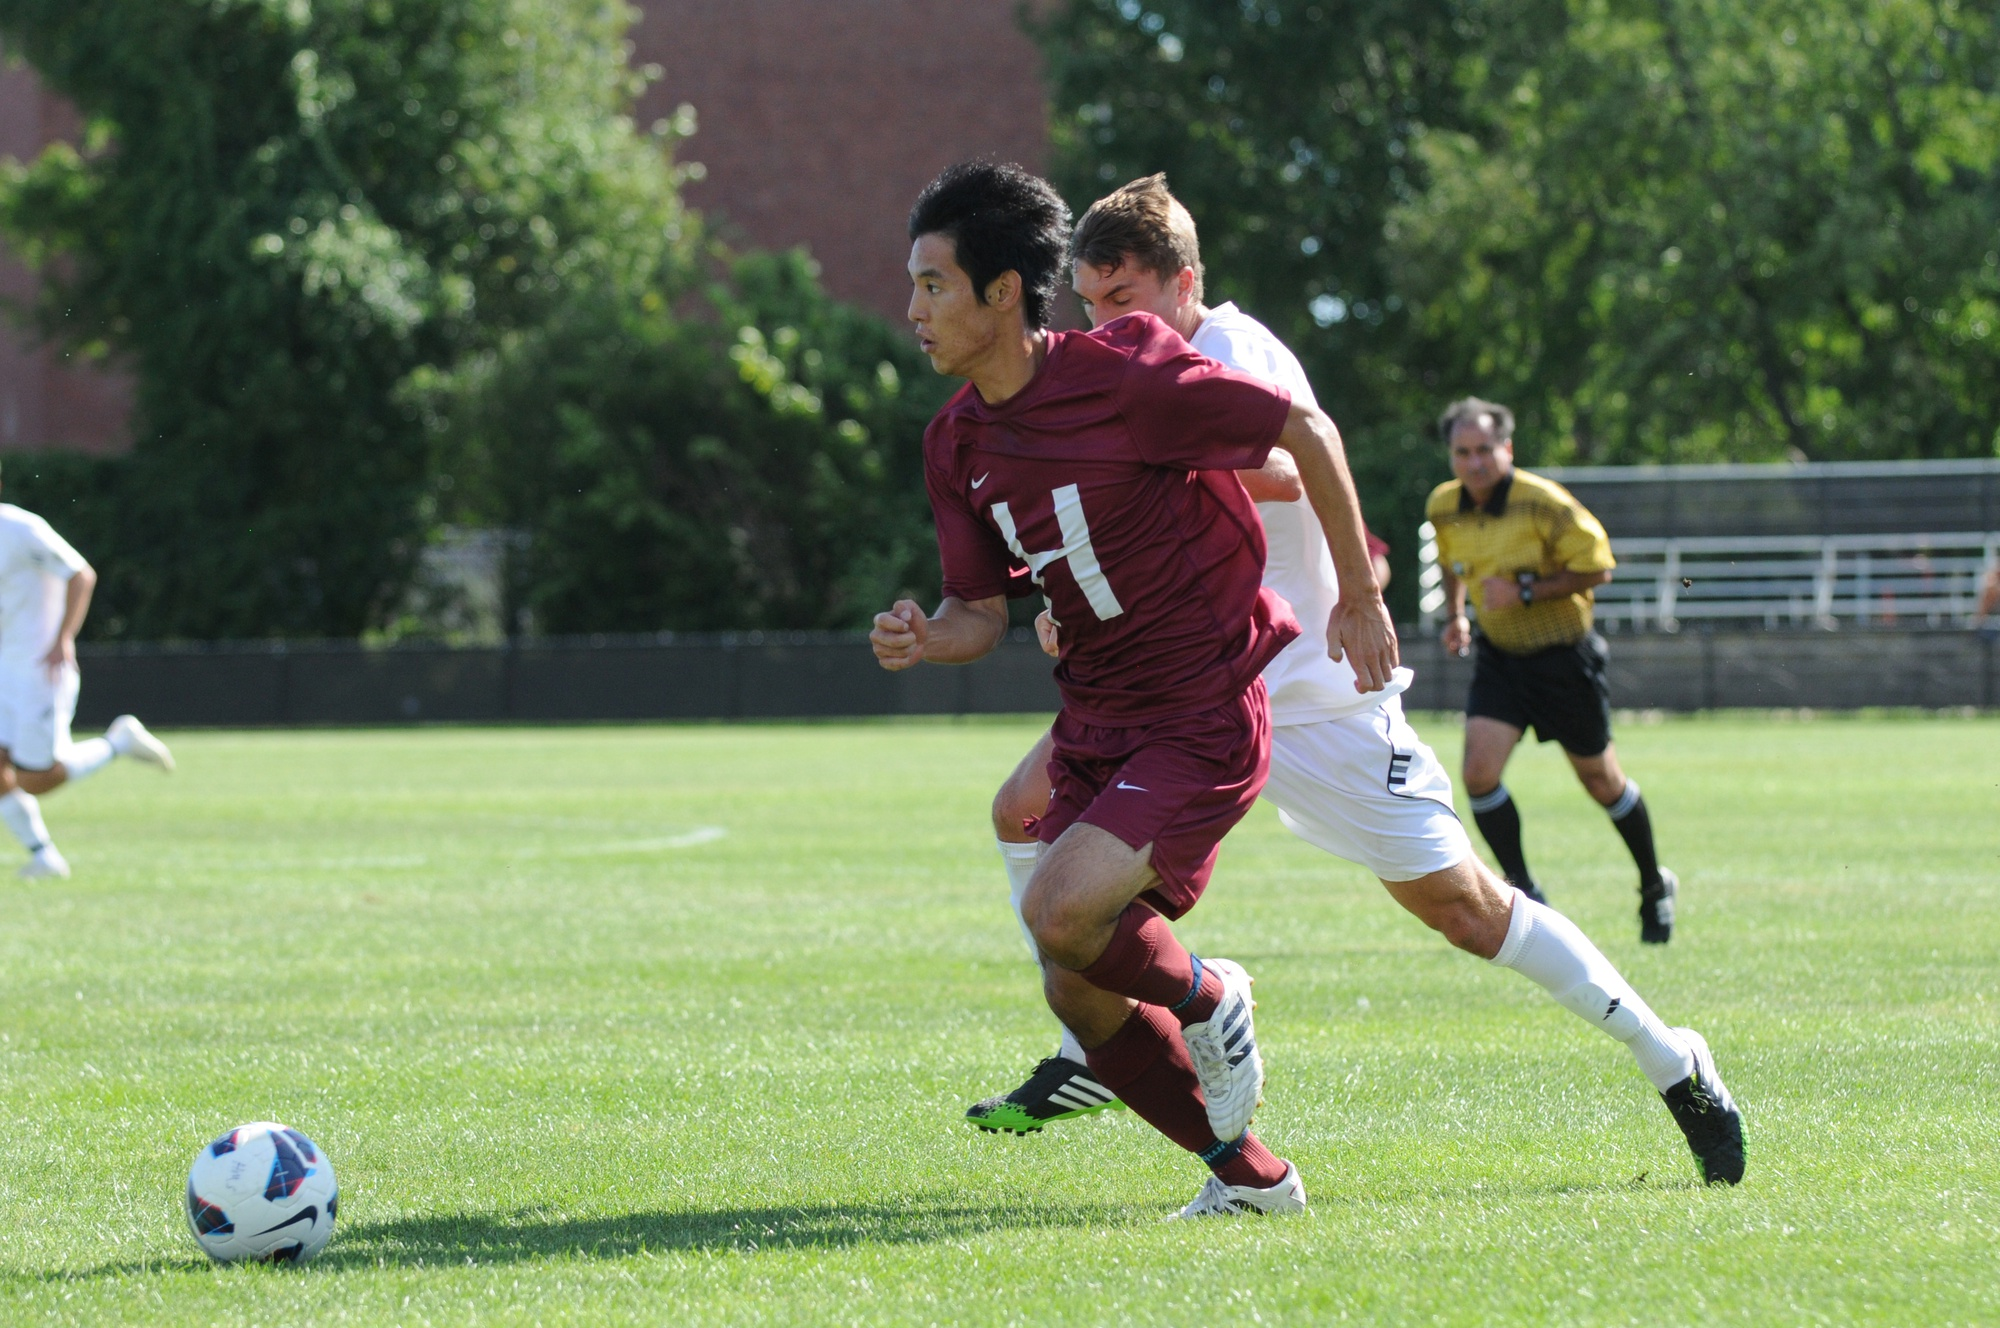 Senior forward Hiroki Kobayashi, shown here in previous action, notched the only goal of the day to push Harvard past Cornell in a tight conference matchup.